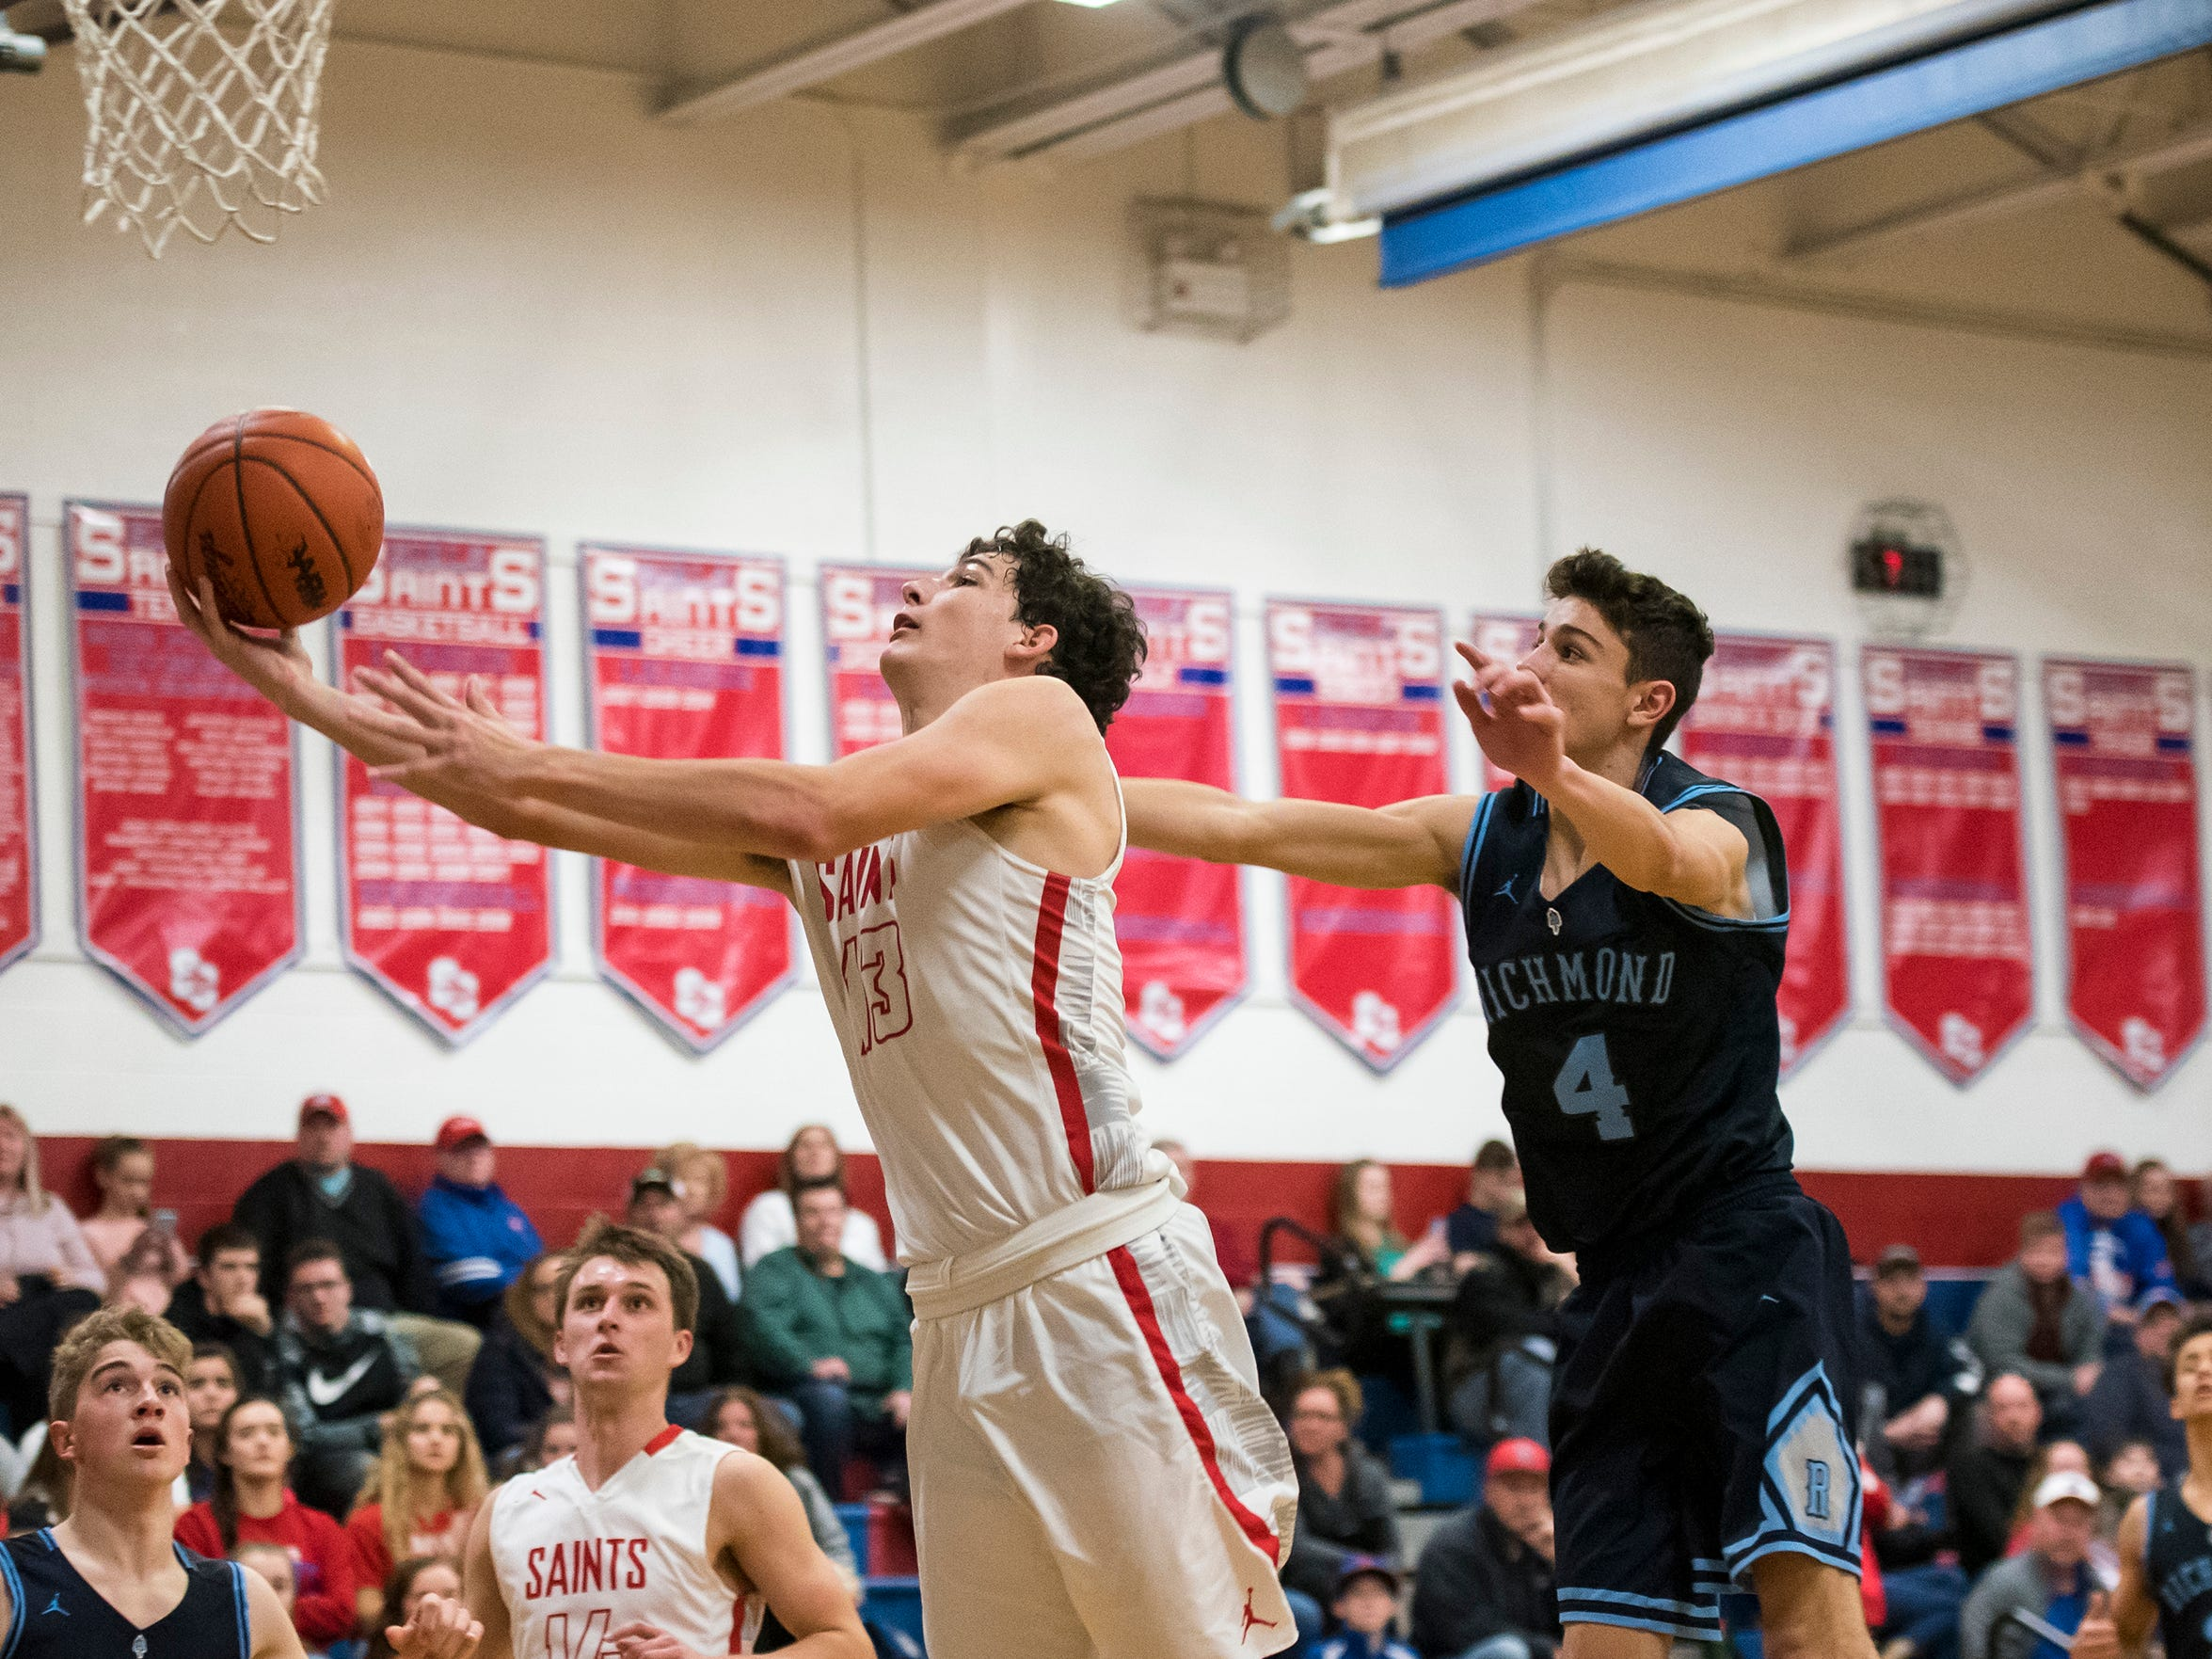 Richmond High School guard Brandon Schorman (4) reaches to block St. Clair's Ryan Zimmer during the first round of the MHSAA district basketball tournament Monday, Feb. 25, 2019 at St. Clair High School.